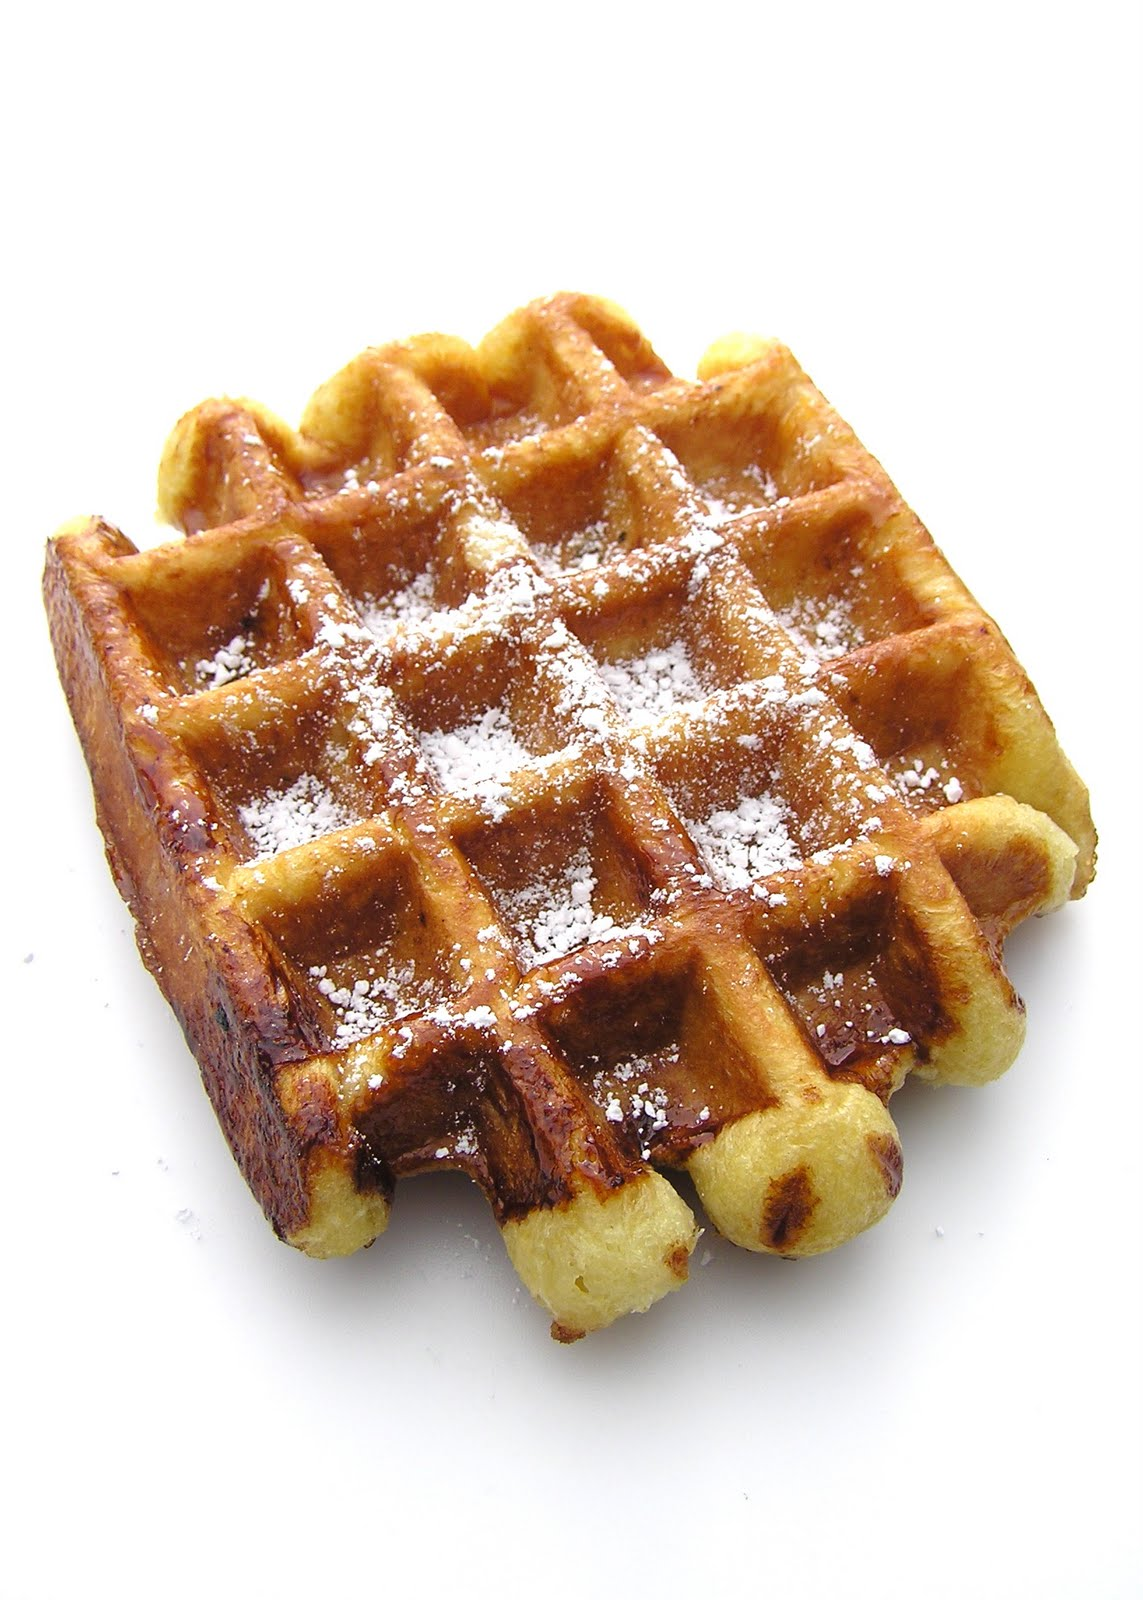 ... about cakes, cookies, confectionery, and culture.: Liège Waffle